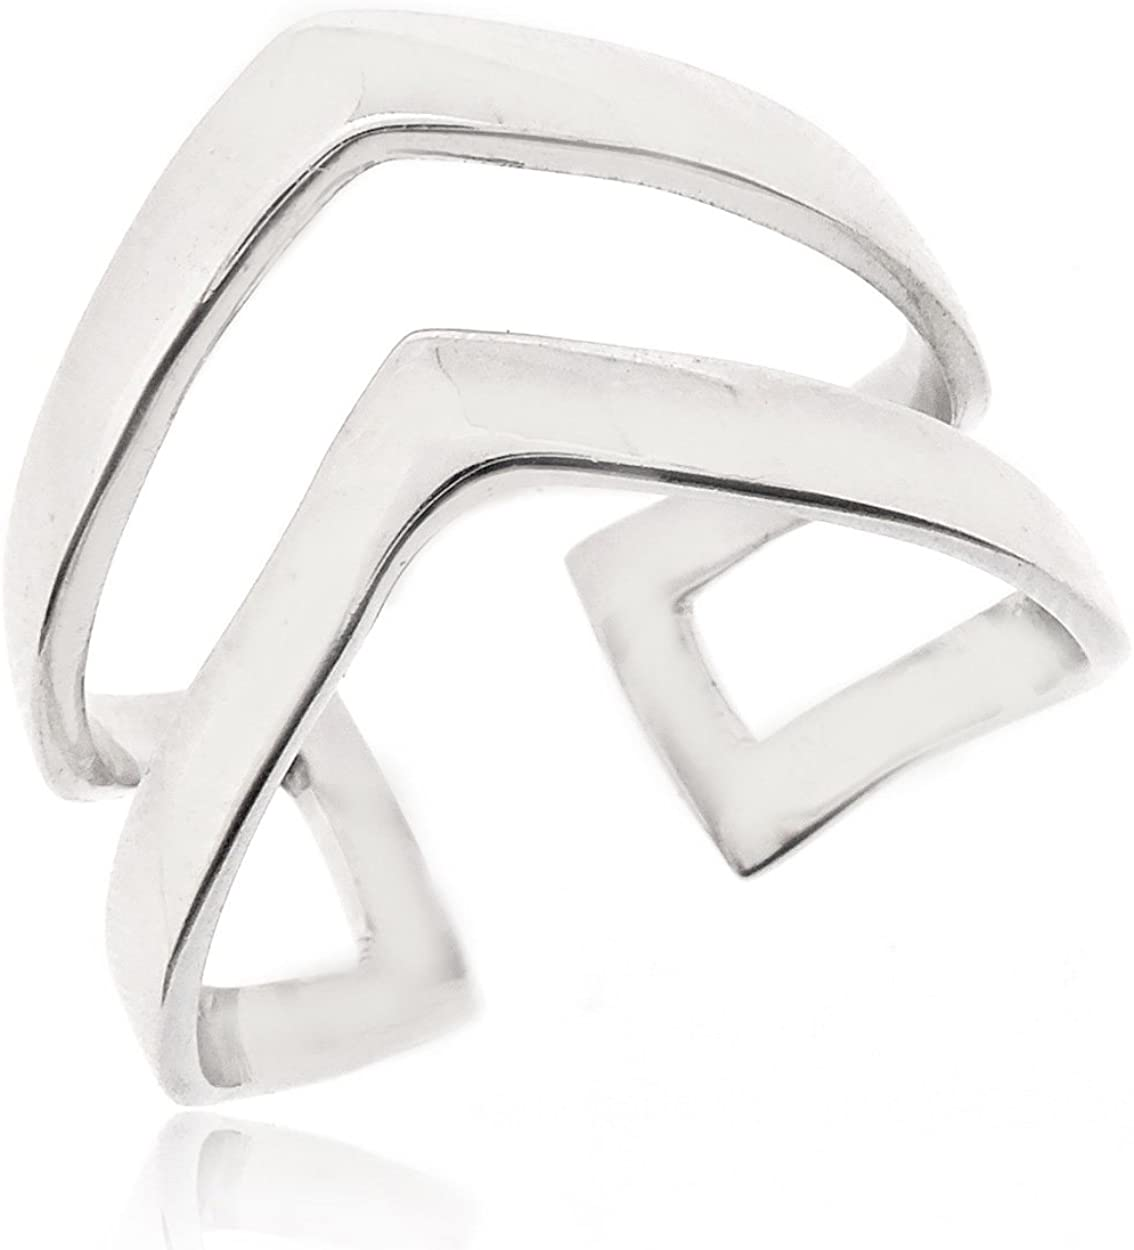 SOVATS Double Chevron Ring for Women 925 Sterling Silver Rhodium Plated - Simple, Stylish &Trendy Nickel Free Ring